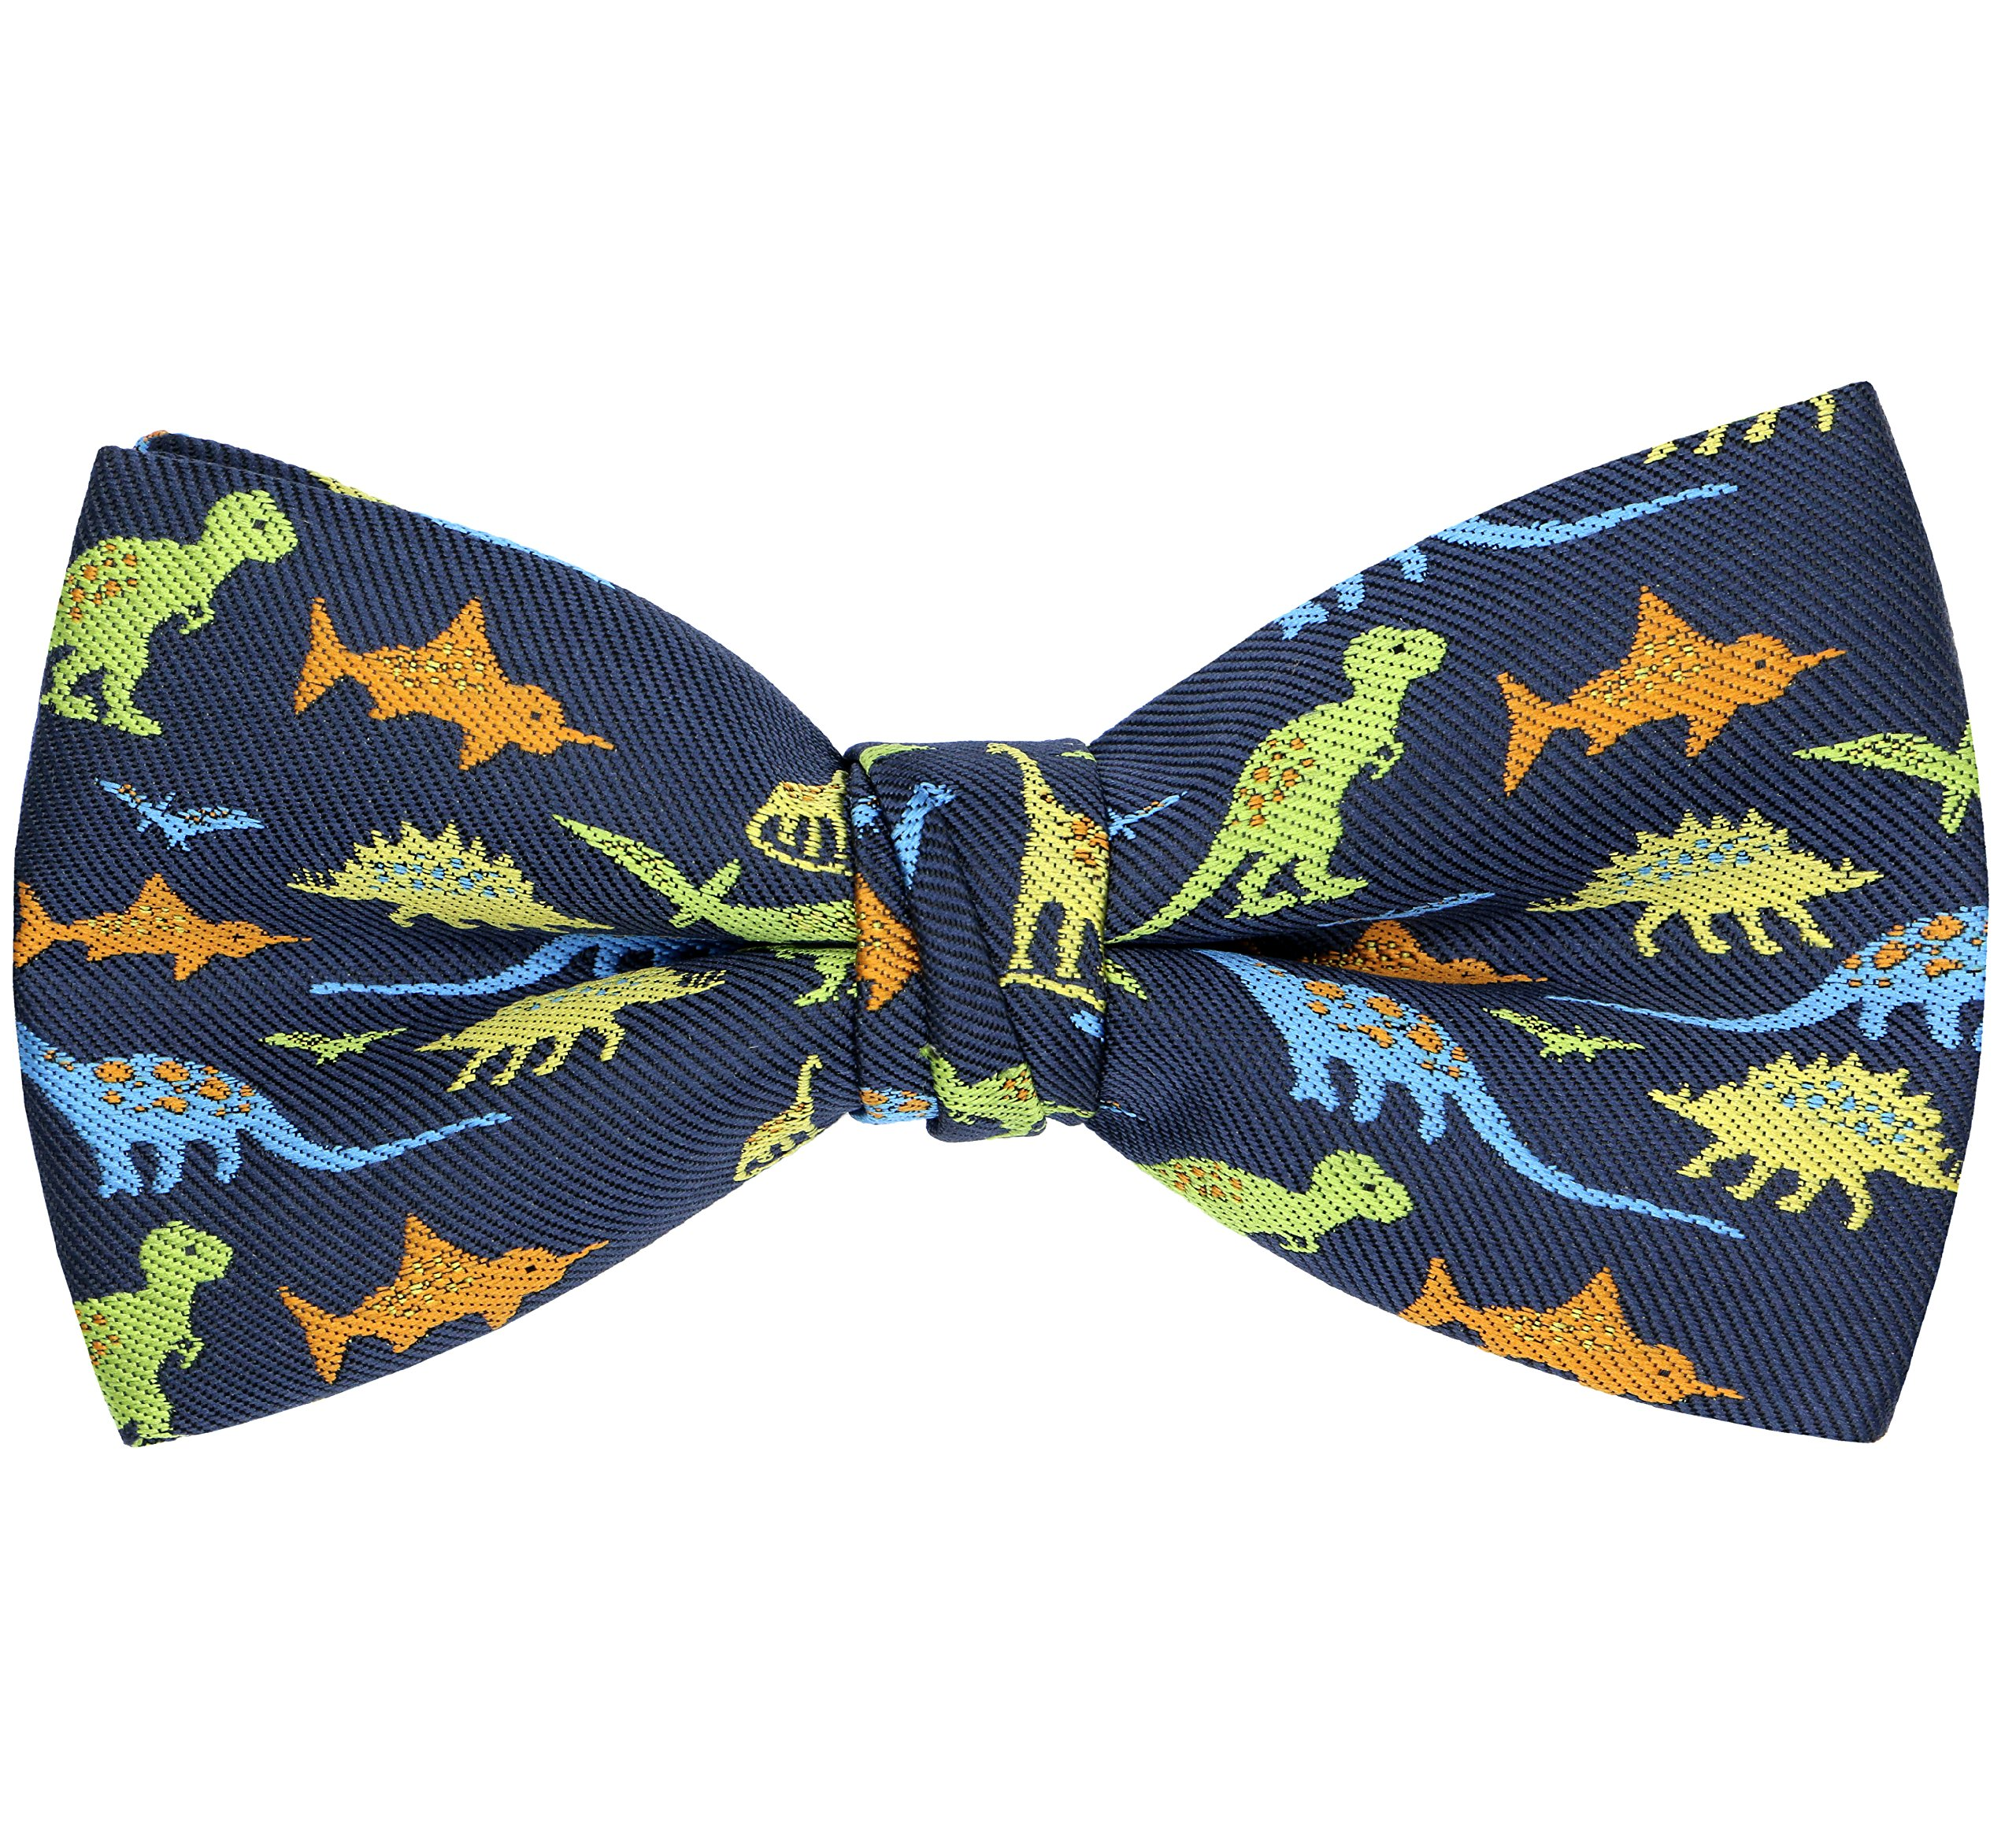 OCIA Pre-Tied Bow Tie Pattern Adjustable Bowties Dinosaur